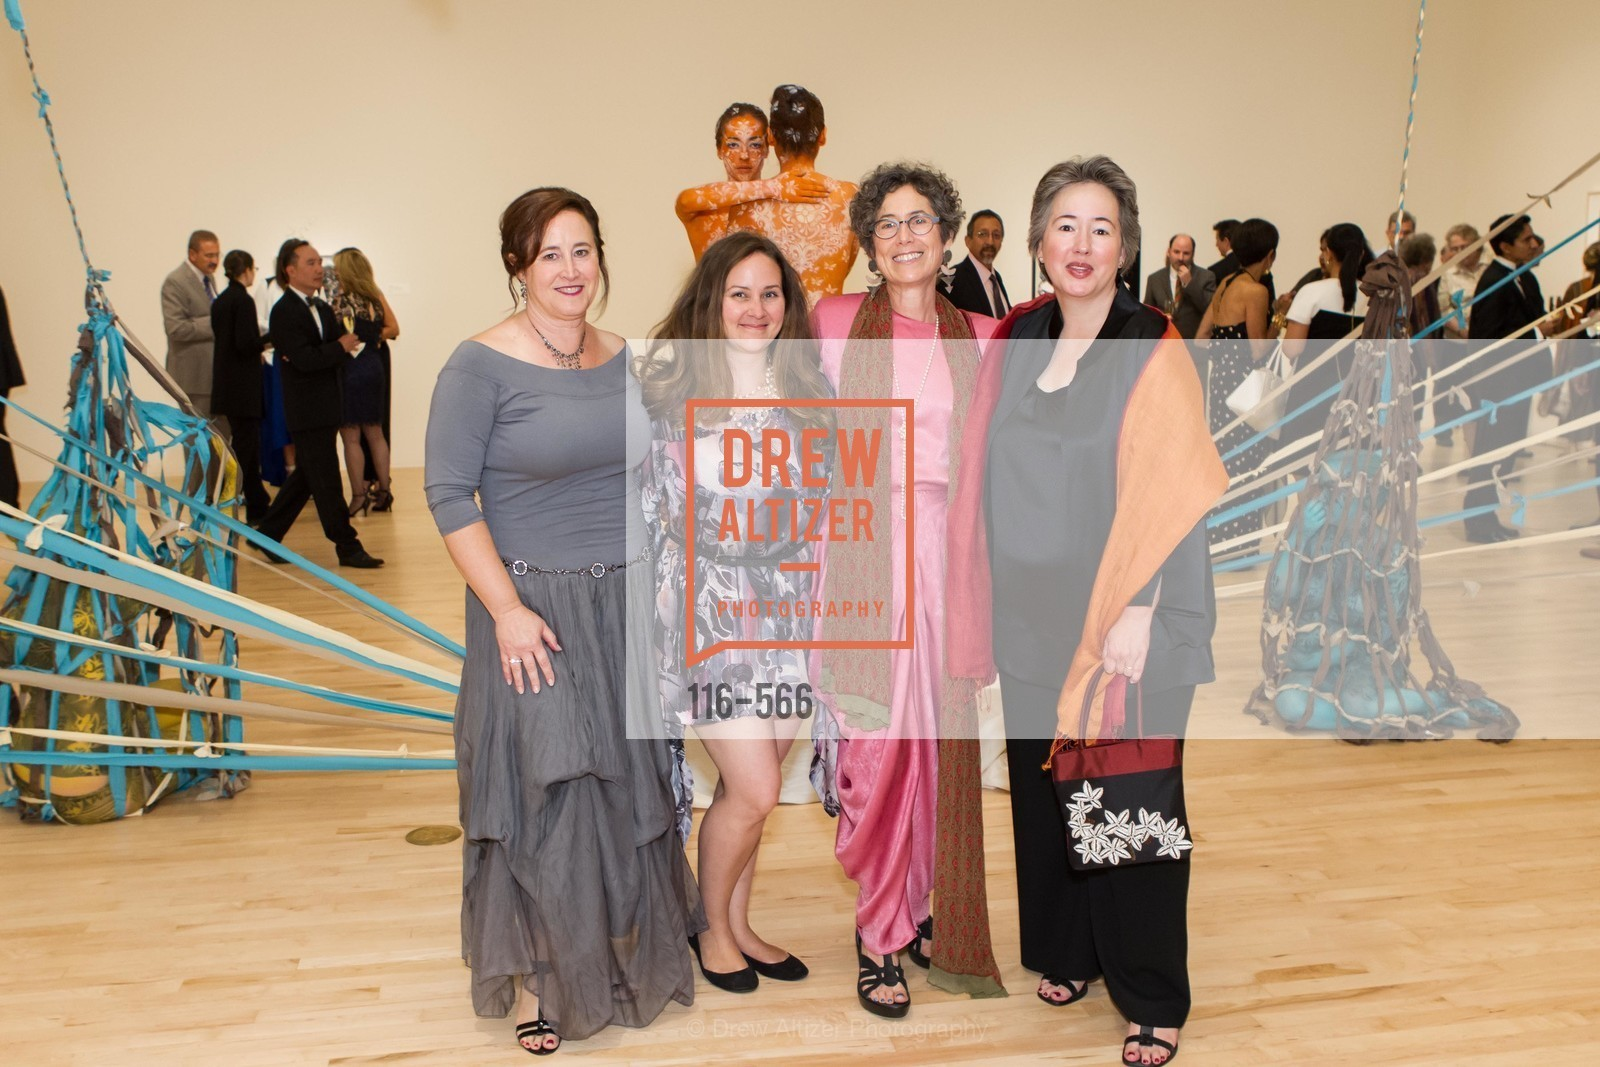 Cornelia Pendleton, Trina Merry, Susan Krane, Claudia Weber, SAN JOSE MUSEUM OF ART'S Spectrum Gala - 45th Anniversary, US, September 13th, 2014,Drew Altizer, Drew Altizer Photography, full-service agency, private events, San Francisco photographer, photographer california